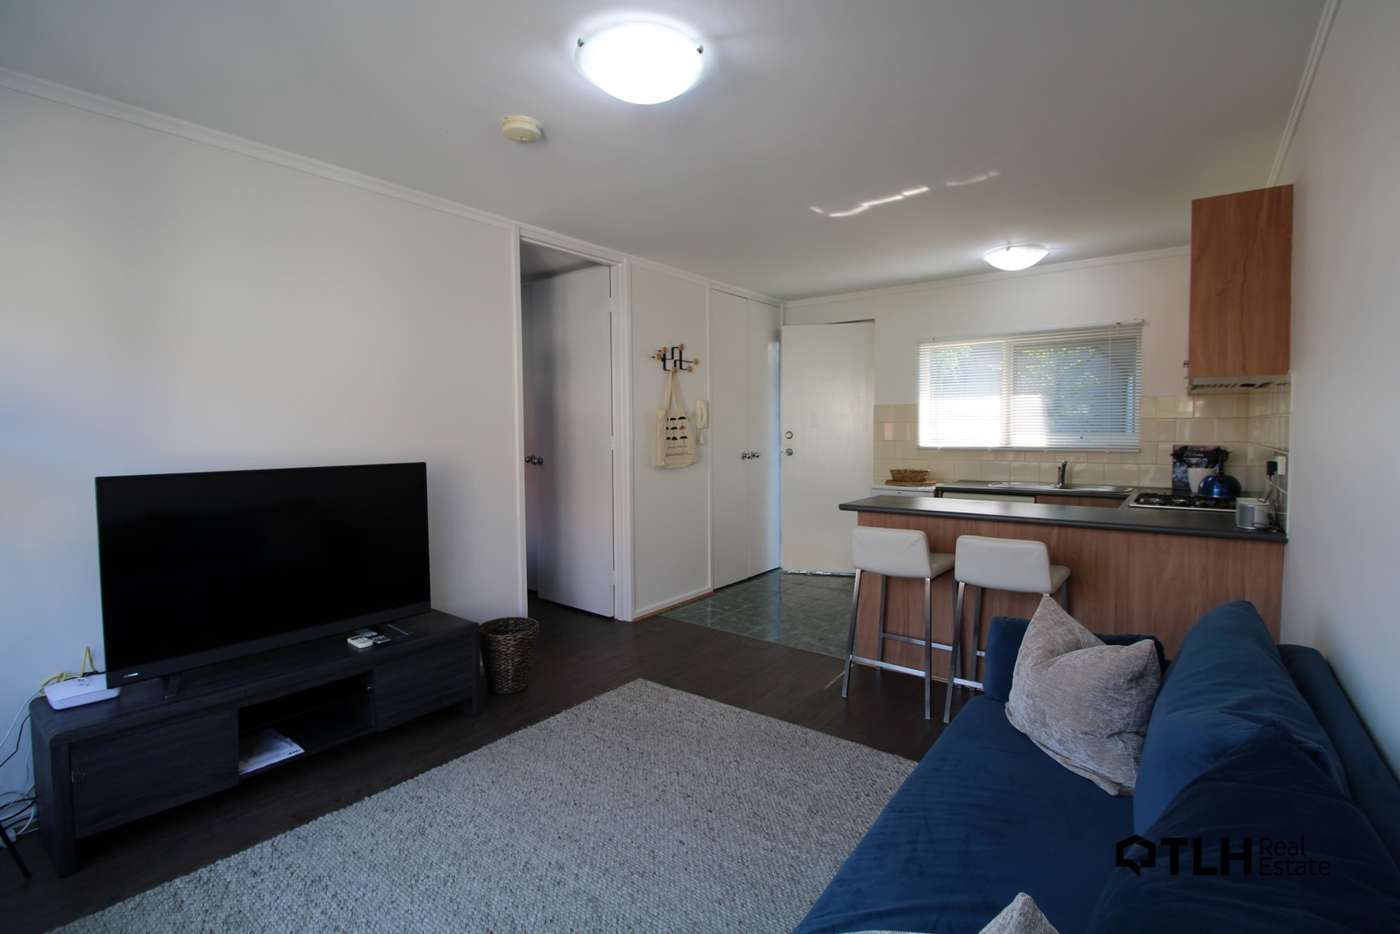 Main view of Homely apartment listing, 13/16 Derby St, Richmond VIC 3121